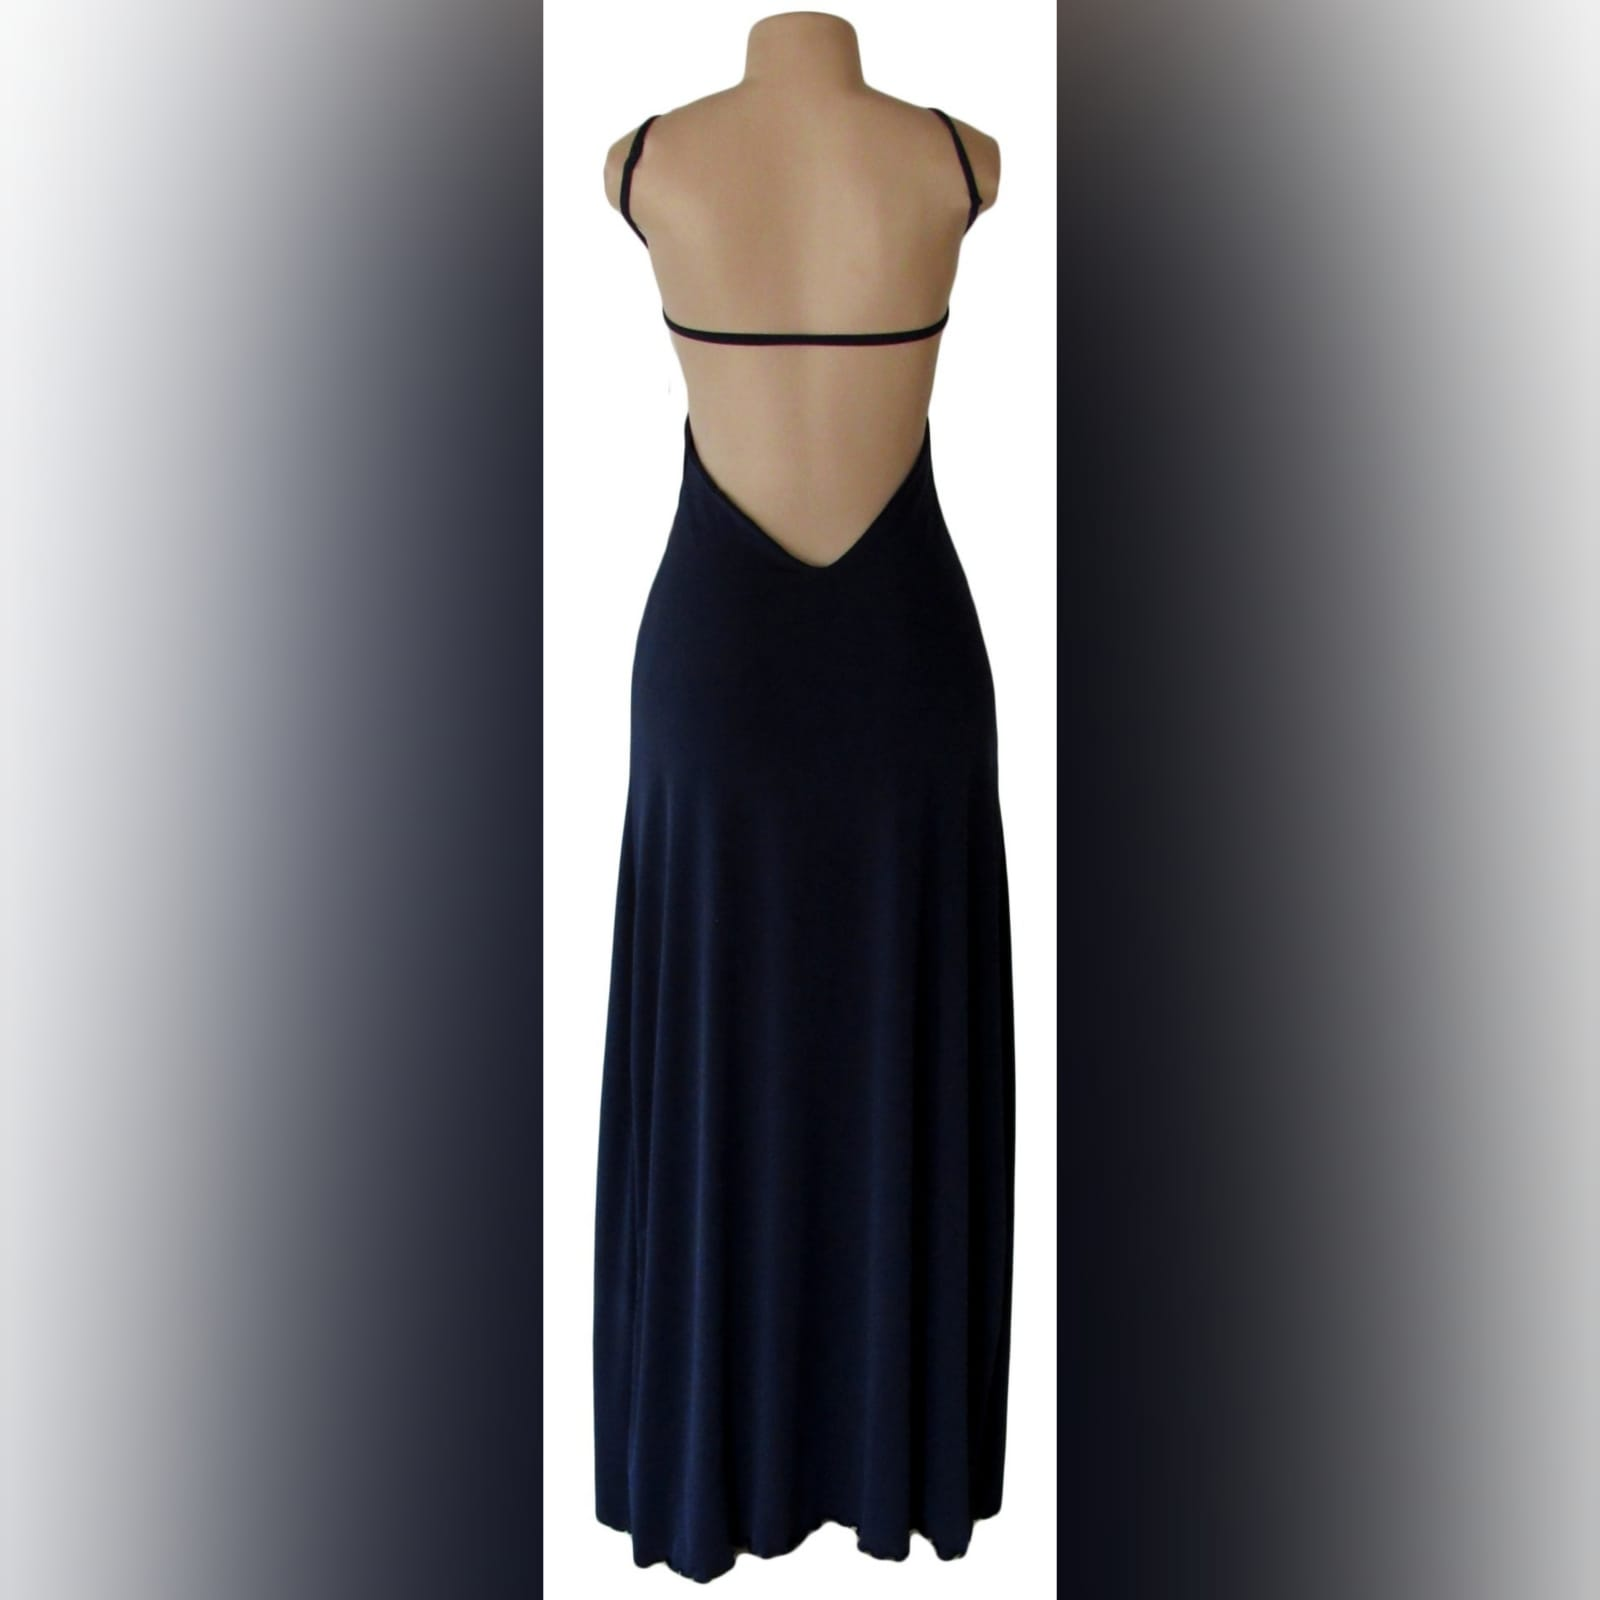 Navy blue long sexy evening dress 3 navy blue long sexy evening dress, with a low open back, side tummy openings and a diamond shaped opening under the bust. With a high slit